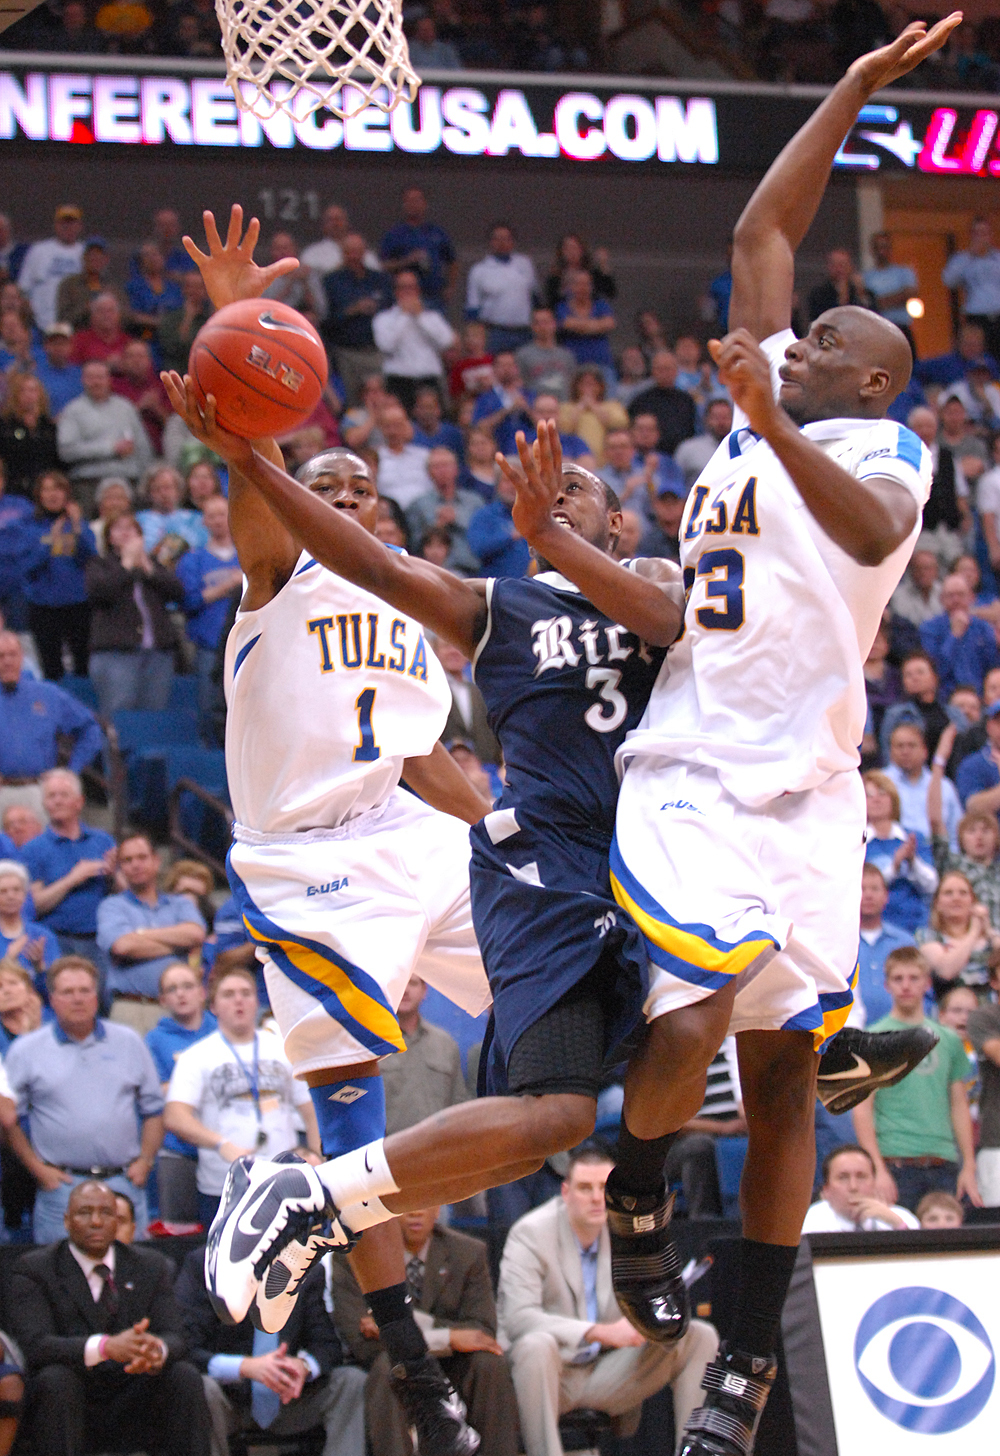 Rice freshman Tamir Jackson draws contact from both Ben Uzoh and Joe Richard during first-round action of the GMC Sierra Conference USA Championship.